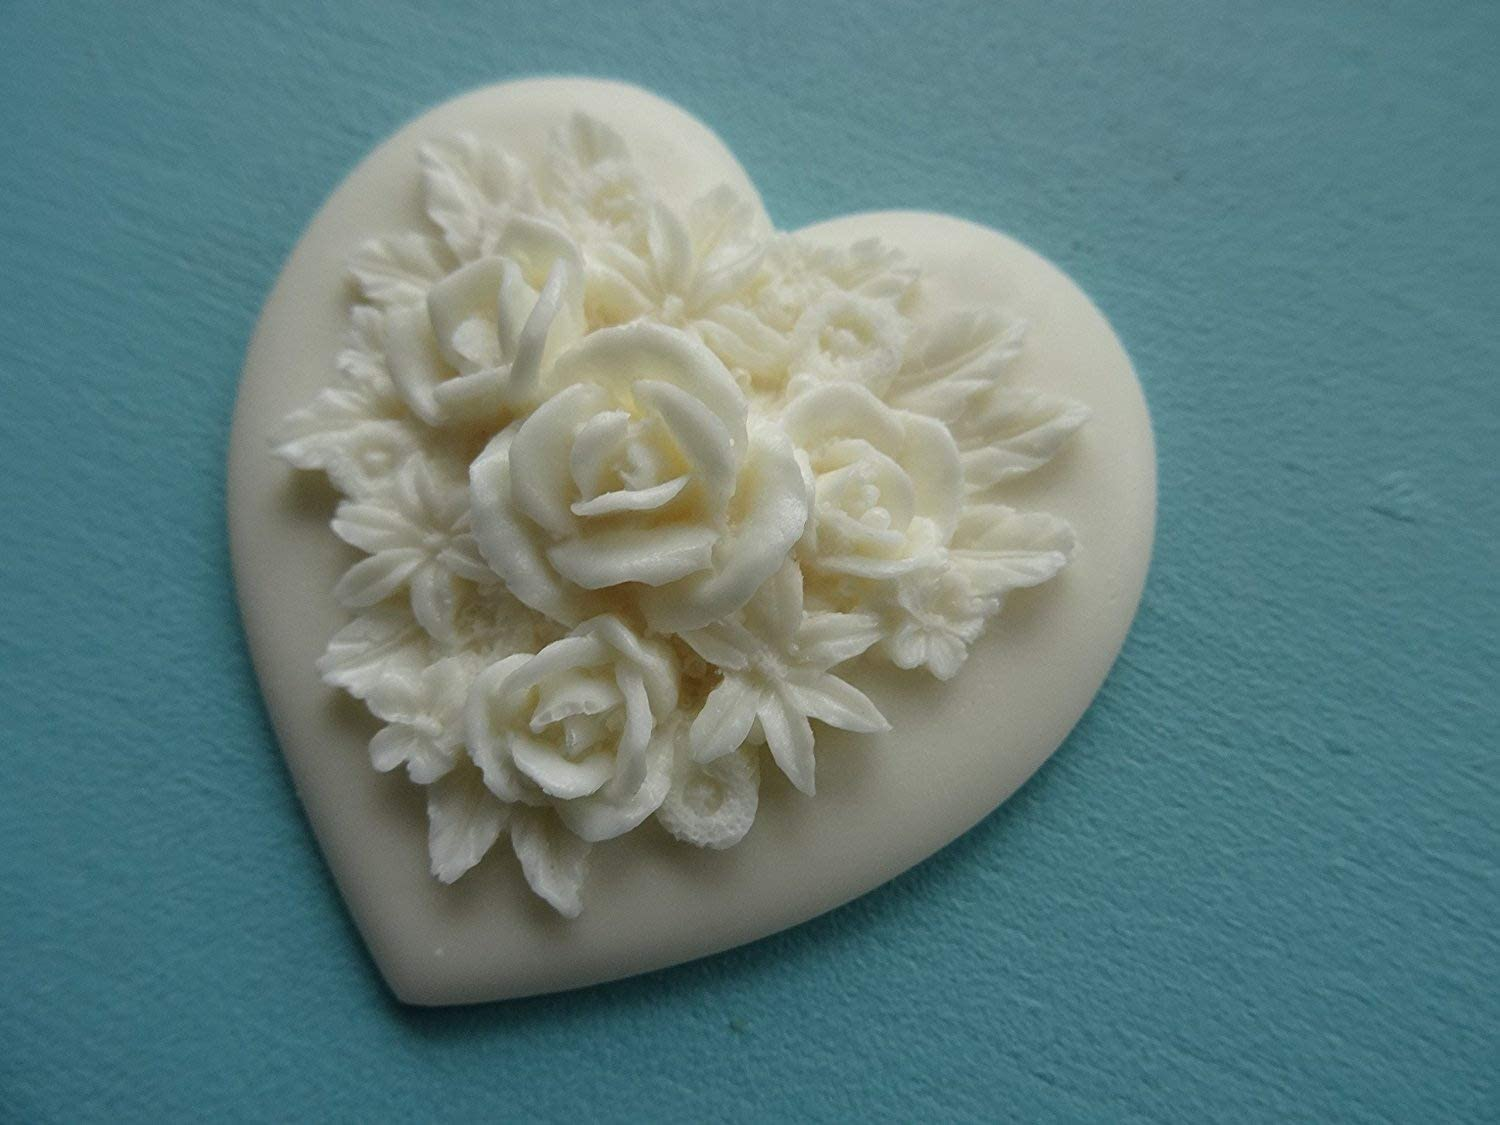 Decorative chic rose on heart /& scrolls furniture moulding onlay resin RHGS